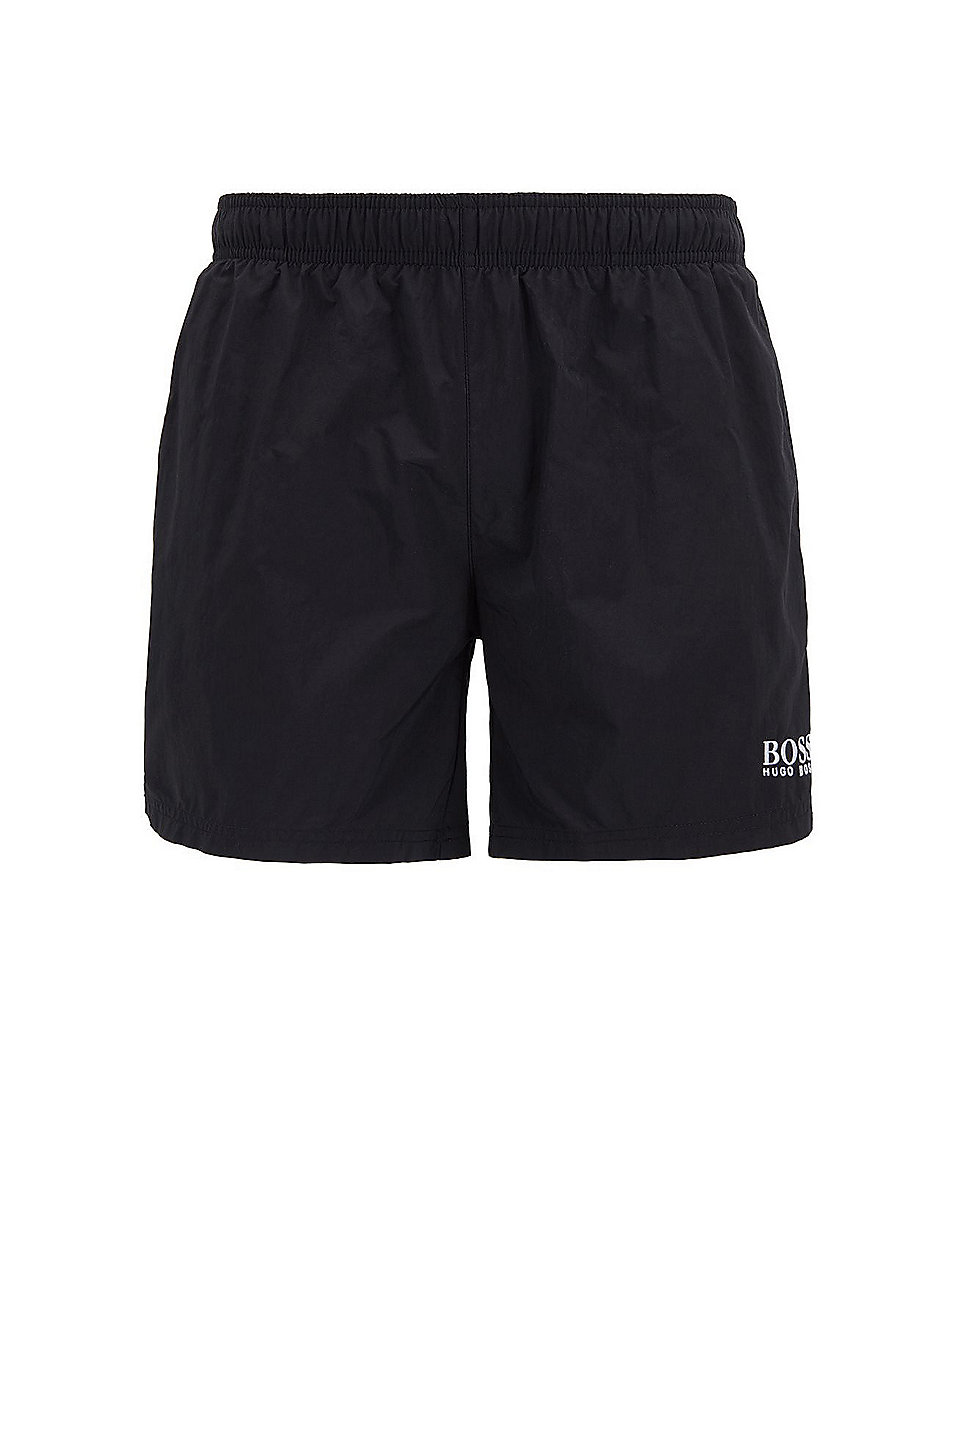 aef7699c0 BOSS - Quick-drying swim shorts with embroidered logo